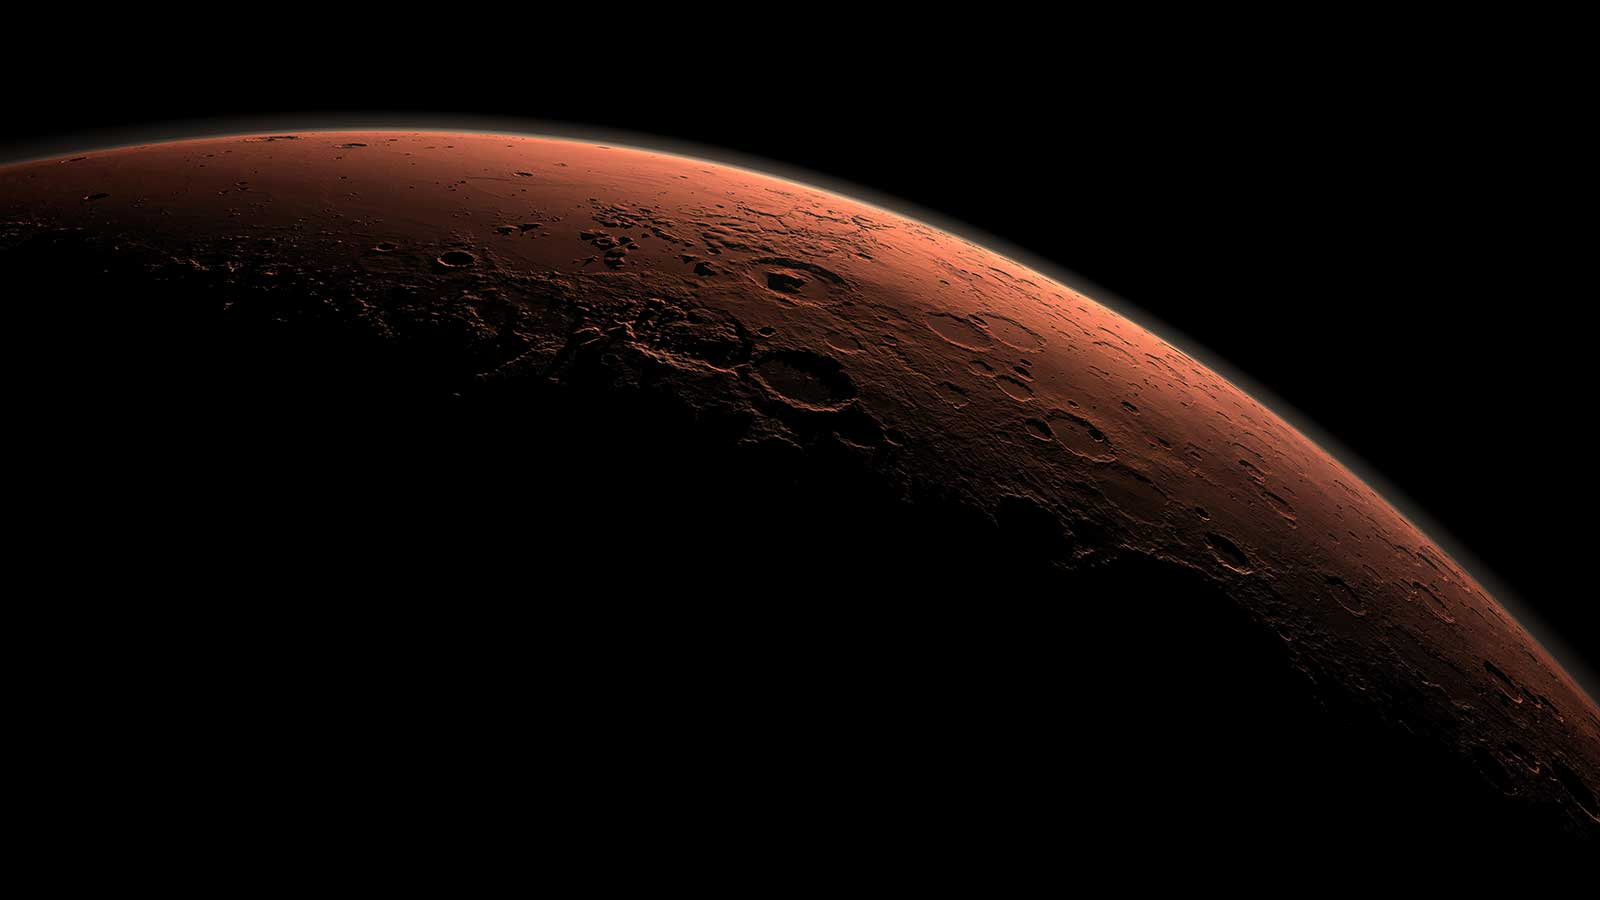 How Could We Terraform Mars?